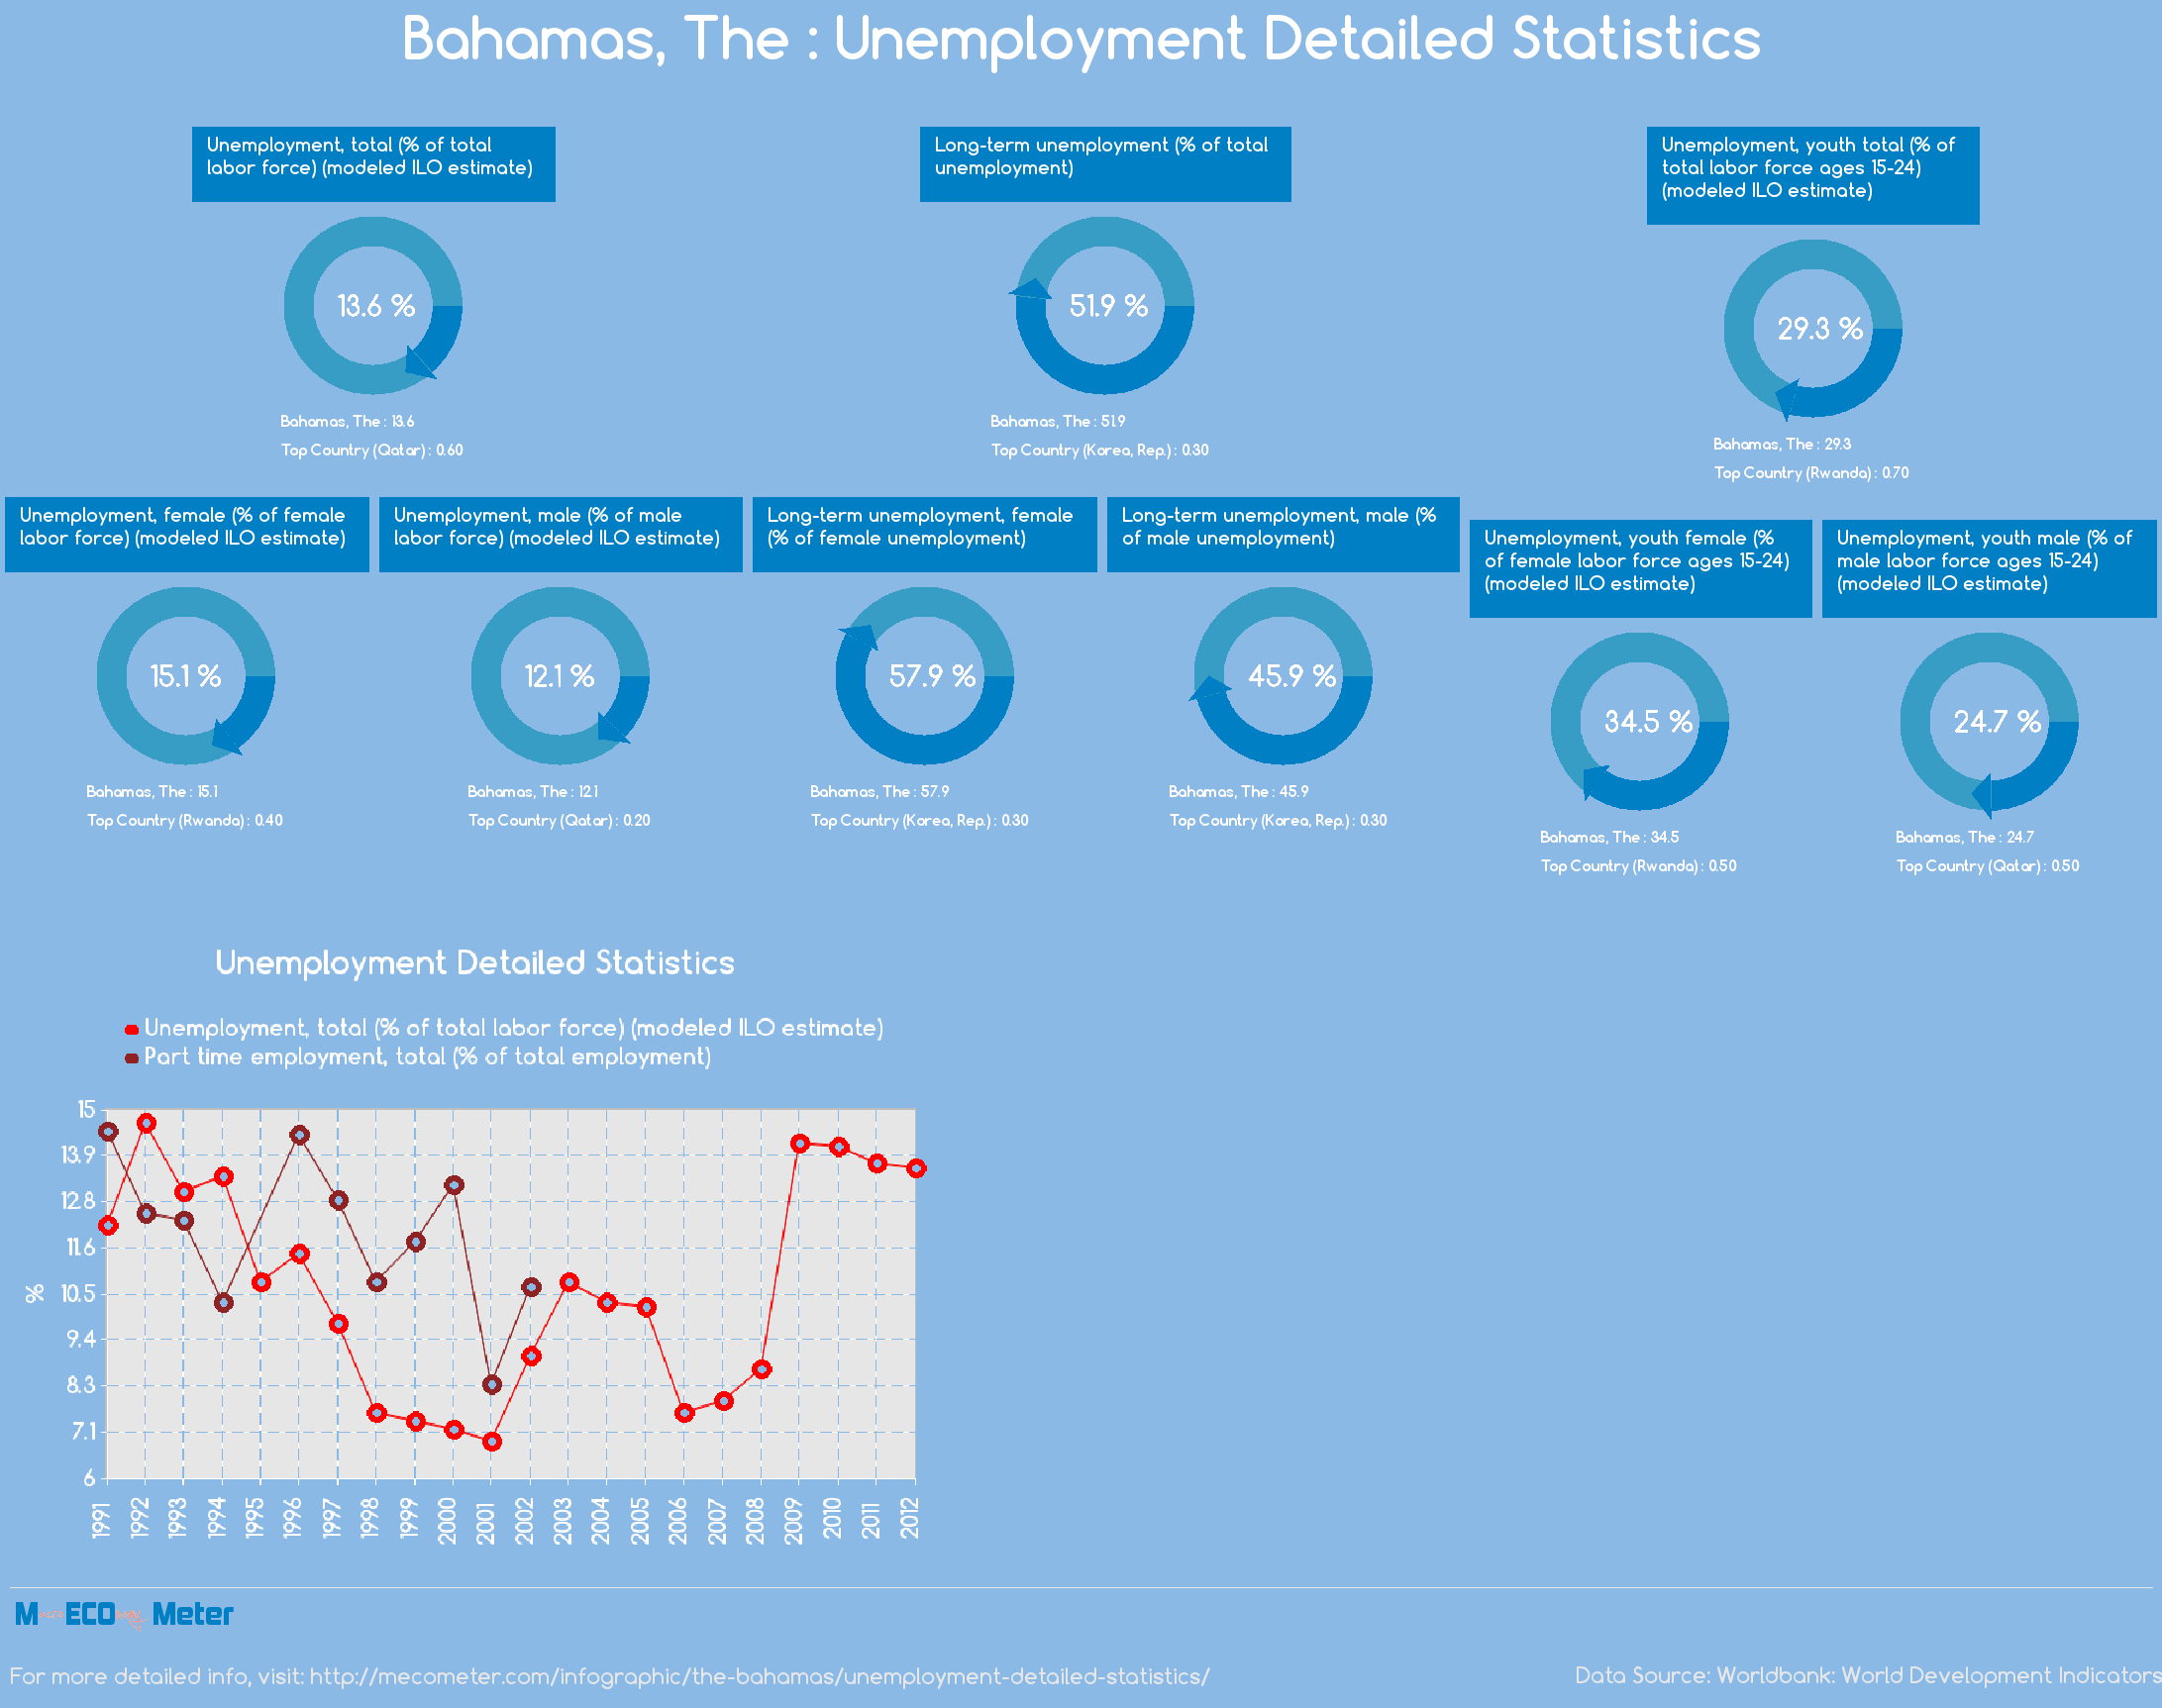 Bahamas, The : Unemployment Detailed Statistics